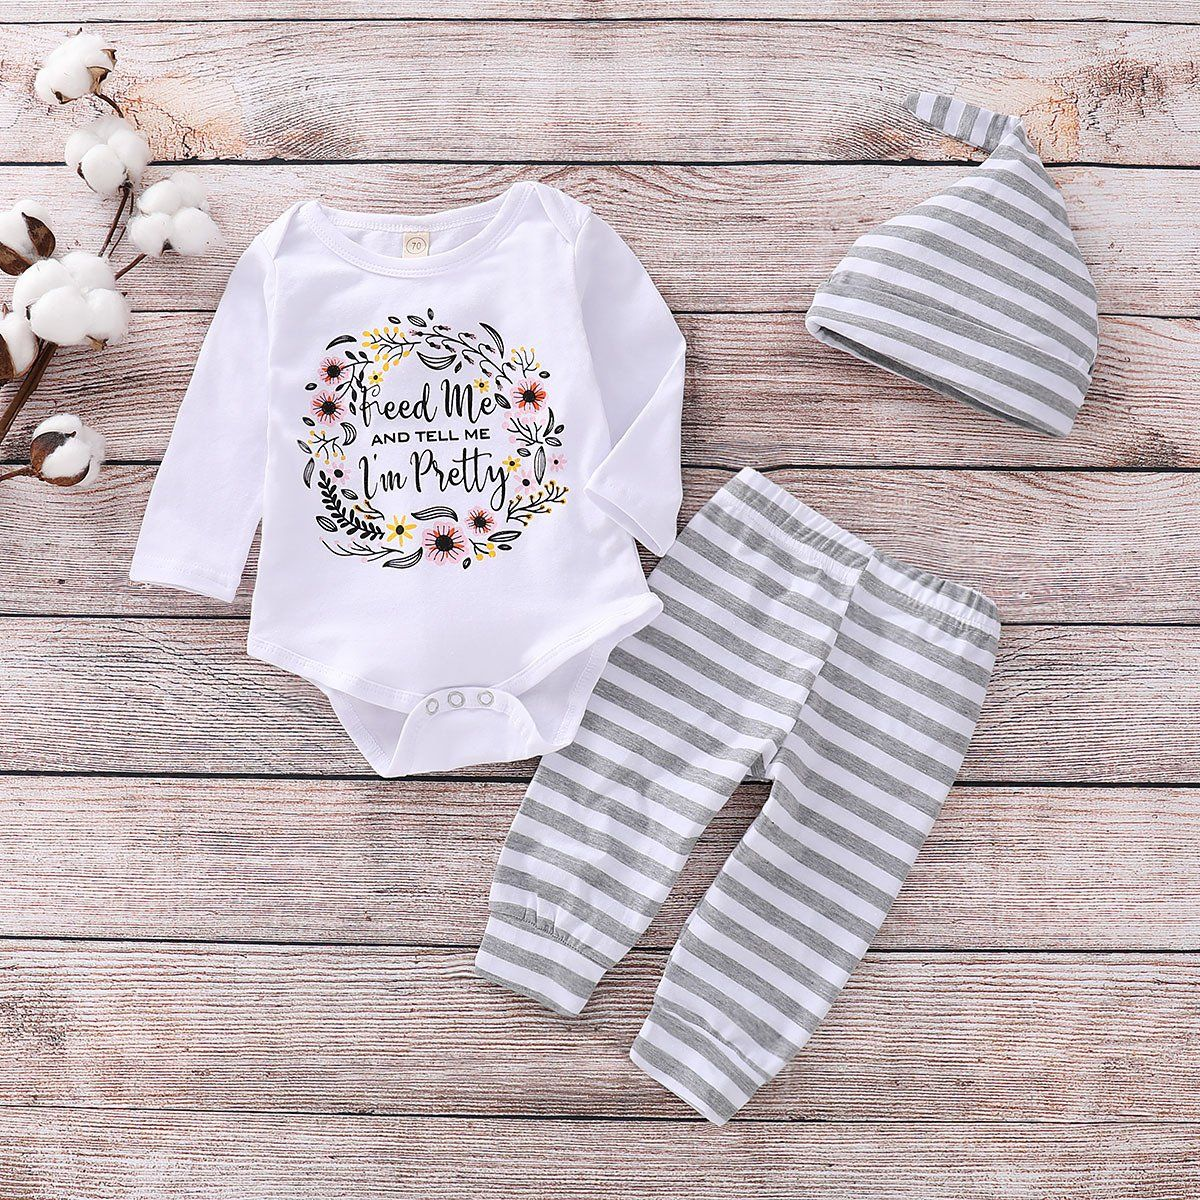 Toddler Baby Boys Long Sleeve Striped Print Romper Jumpsuit Clothes Outfit Sets